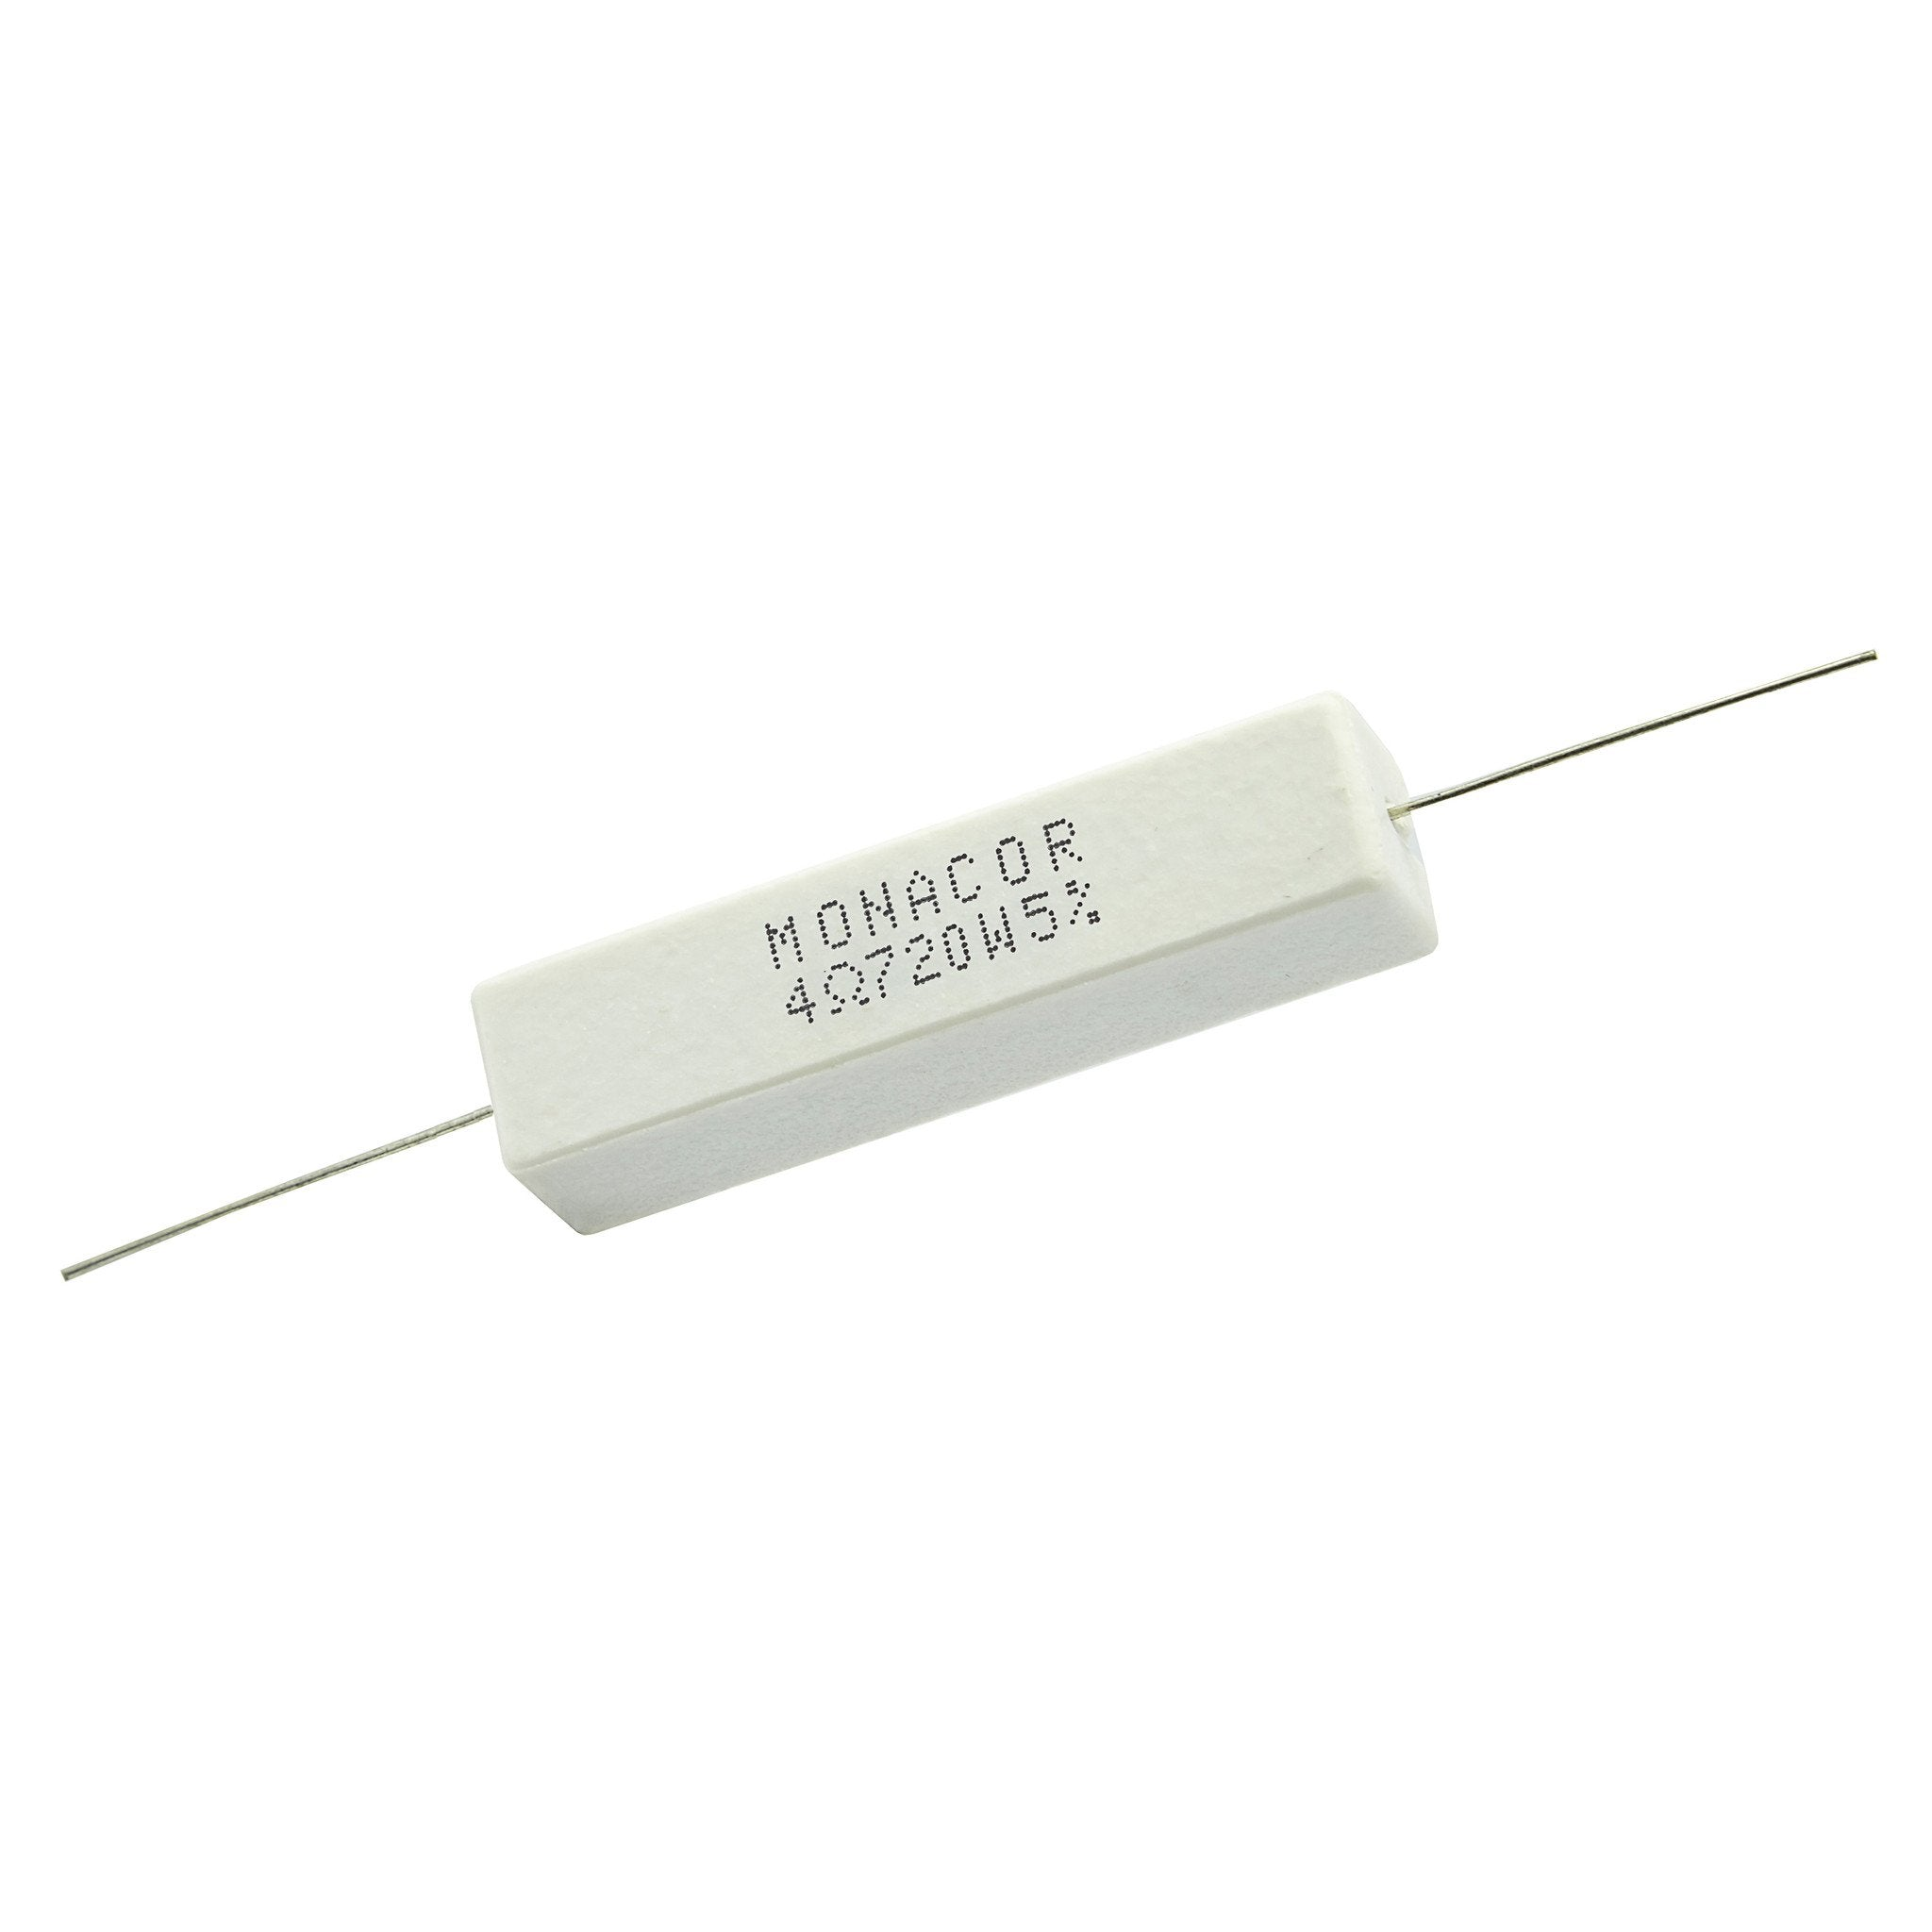 4.7 Ohm 20 Watt 5% Ceramic Wirewound Resistor - Willys-Hifi Ltd